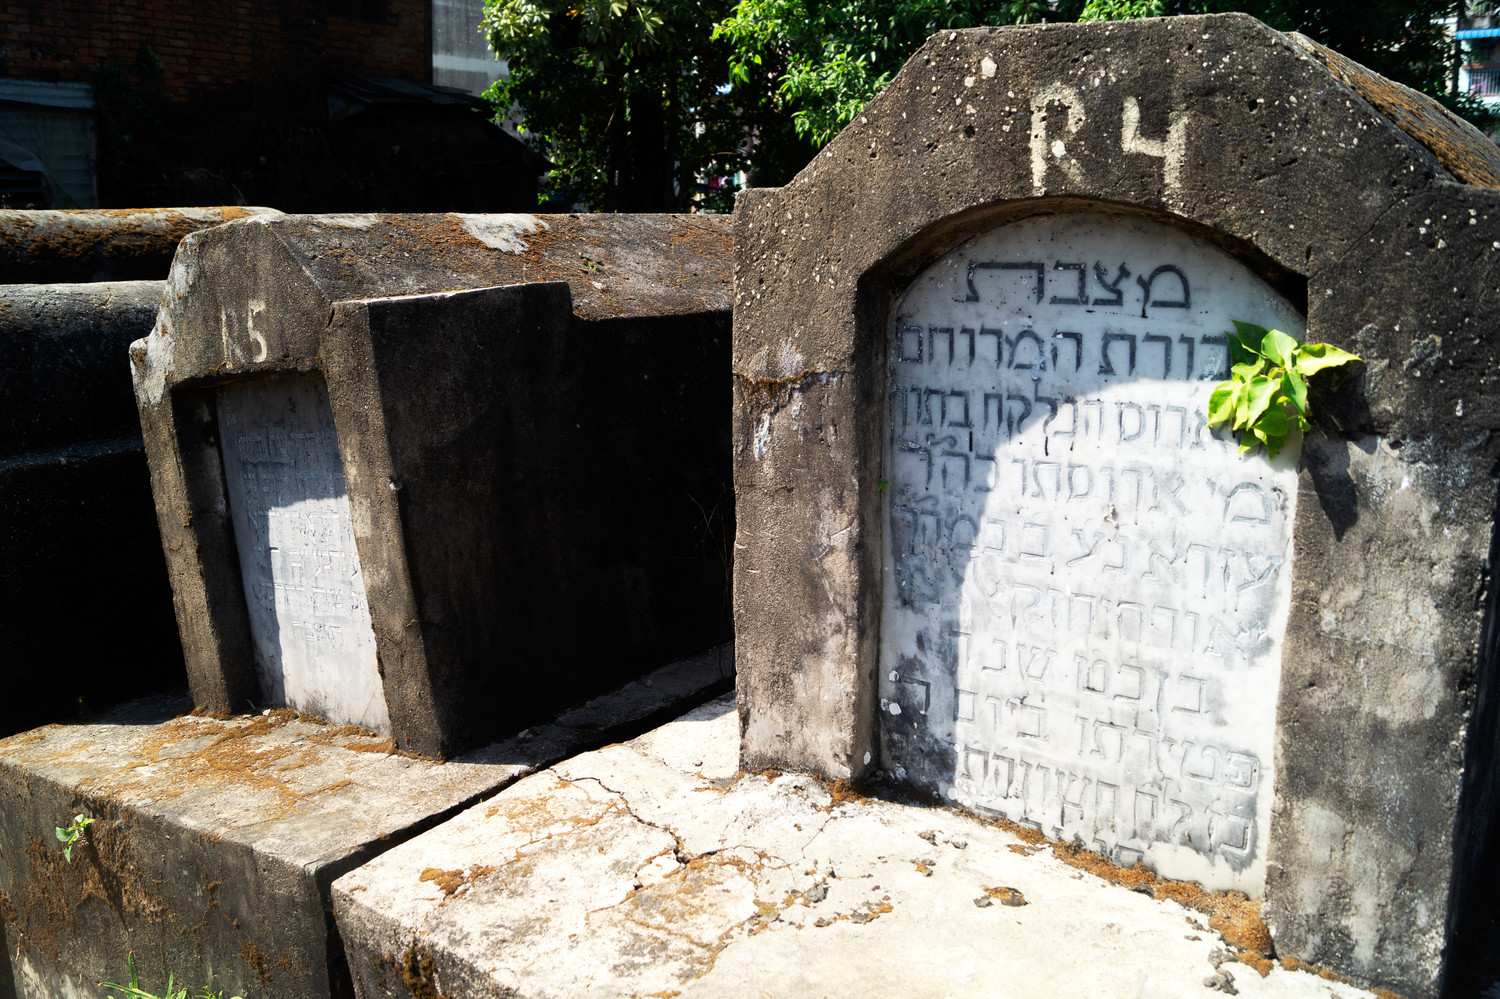 Over 20 years ago, the country announced that it would move the Jewish cemetery out of the capital Yangon, where it's hidden on a hill. It's still there.